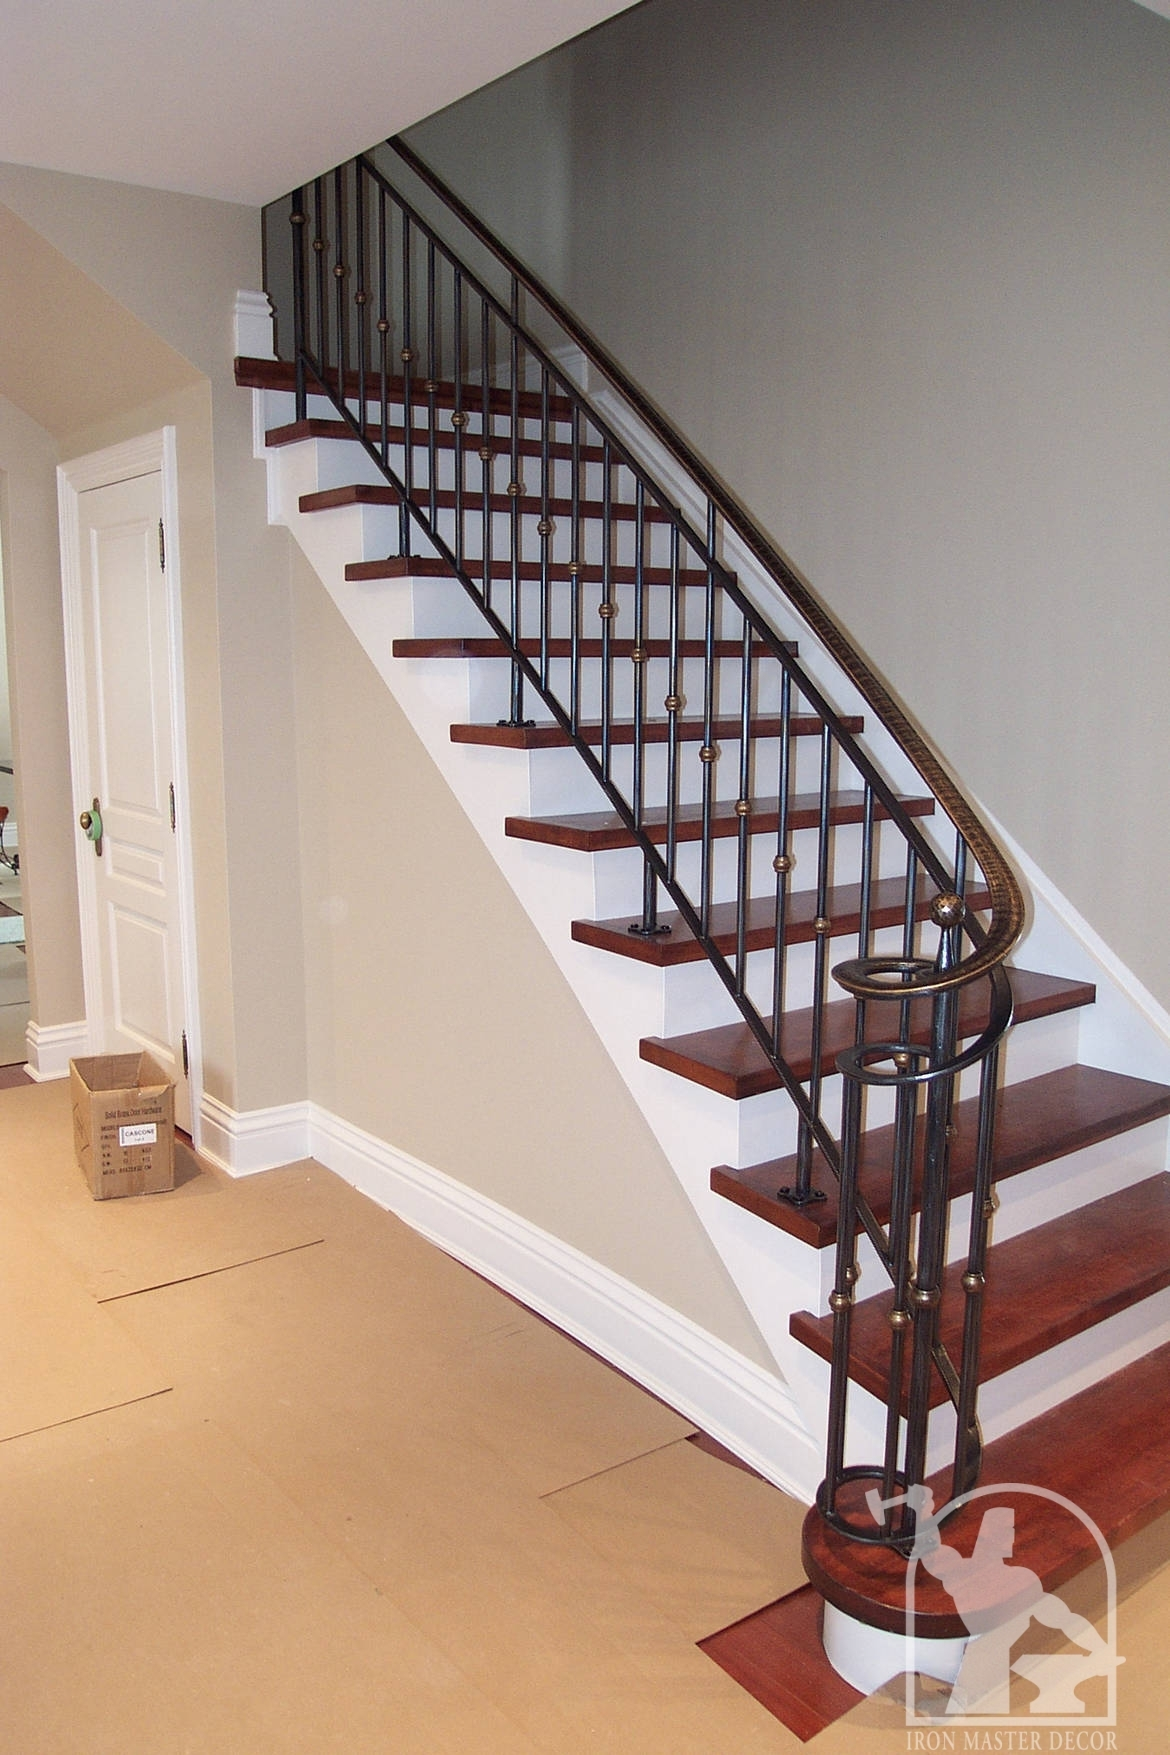 Wrought Iron Interior Railings Photo Gallery Iron Master